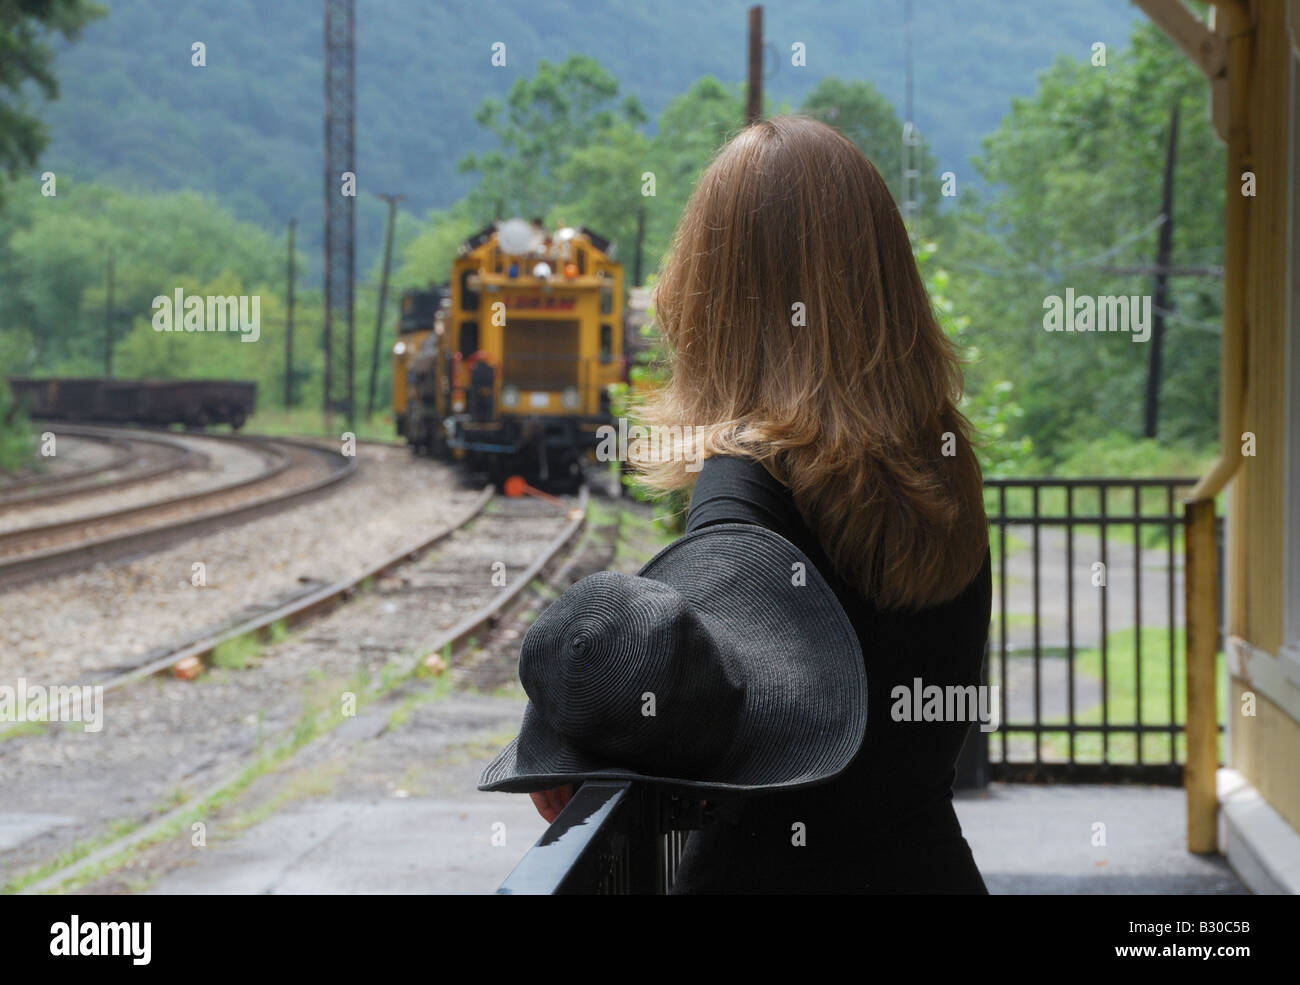 woman with black hat waits for train - Stock Image